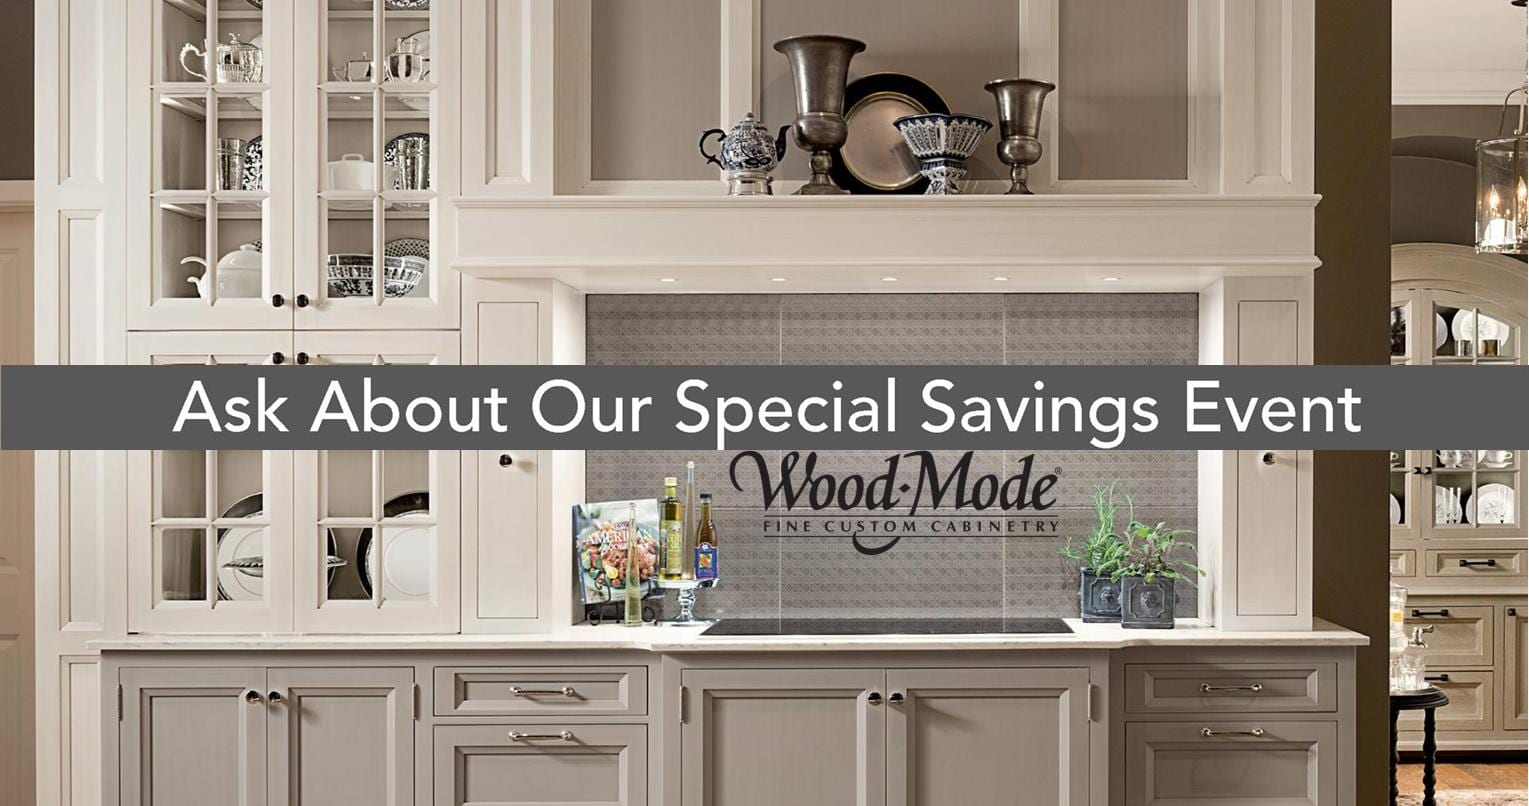 wm-special-savings-fb